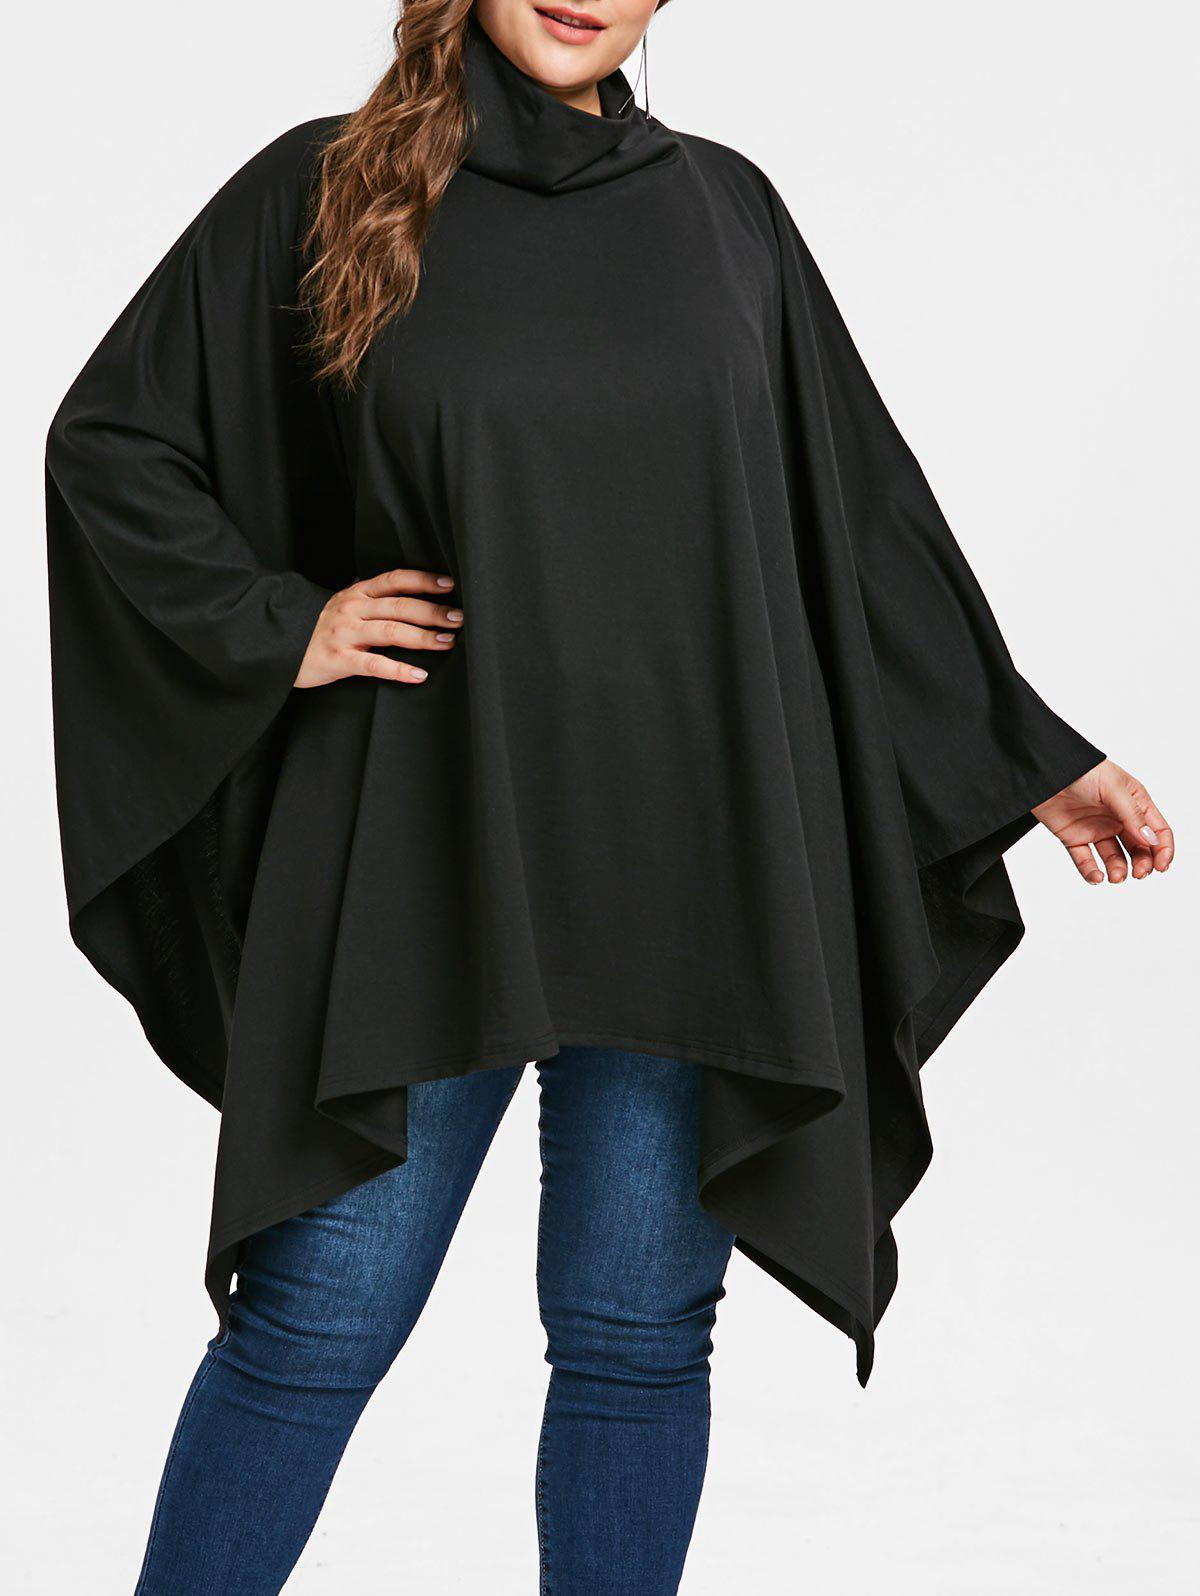 Plus Size Asymmetric Cape Top - BLACK 1X